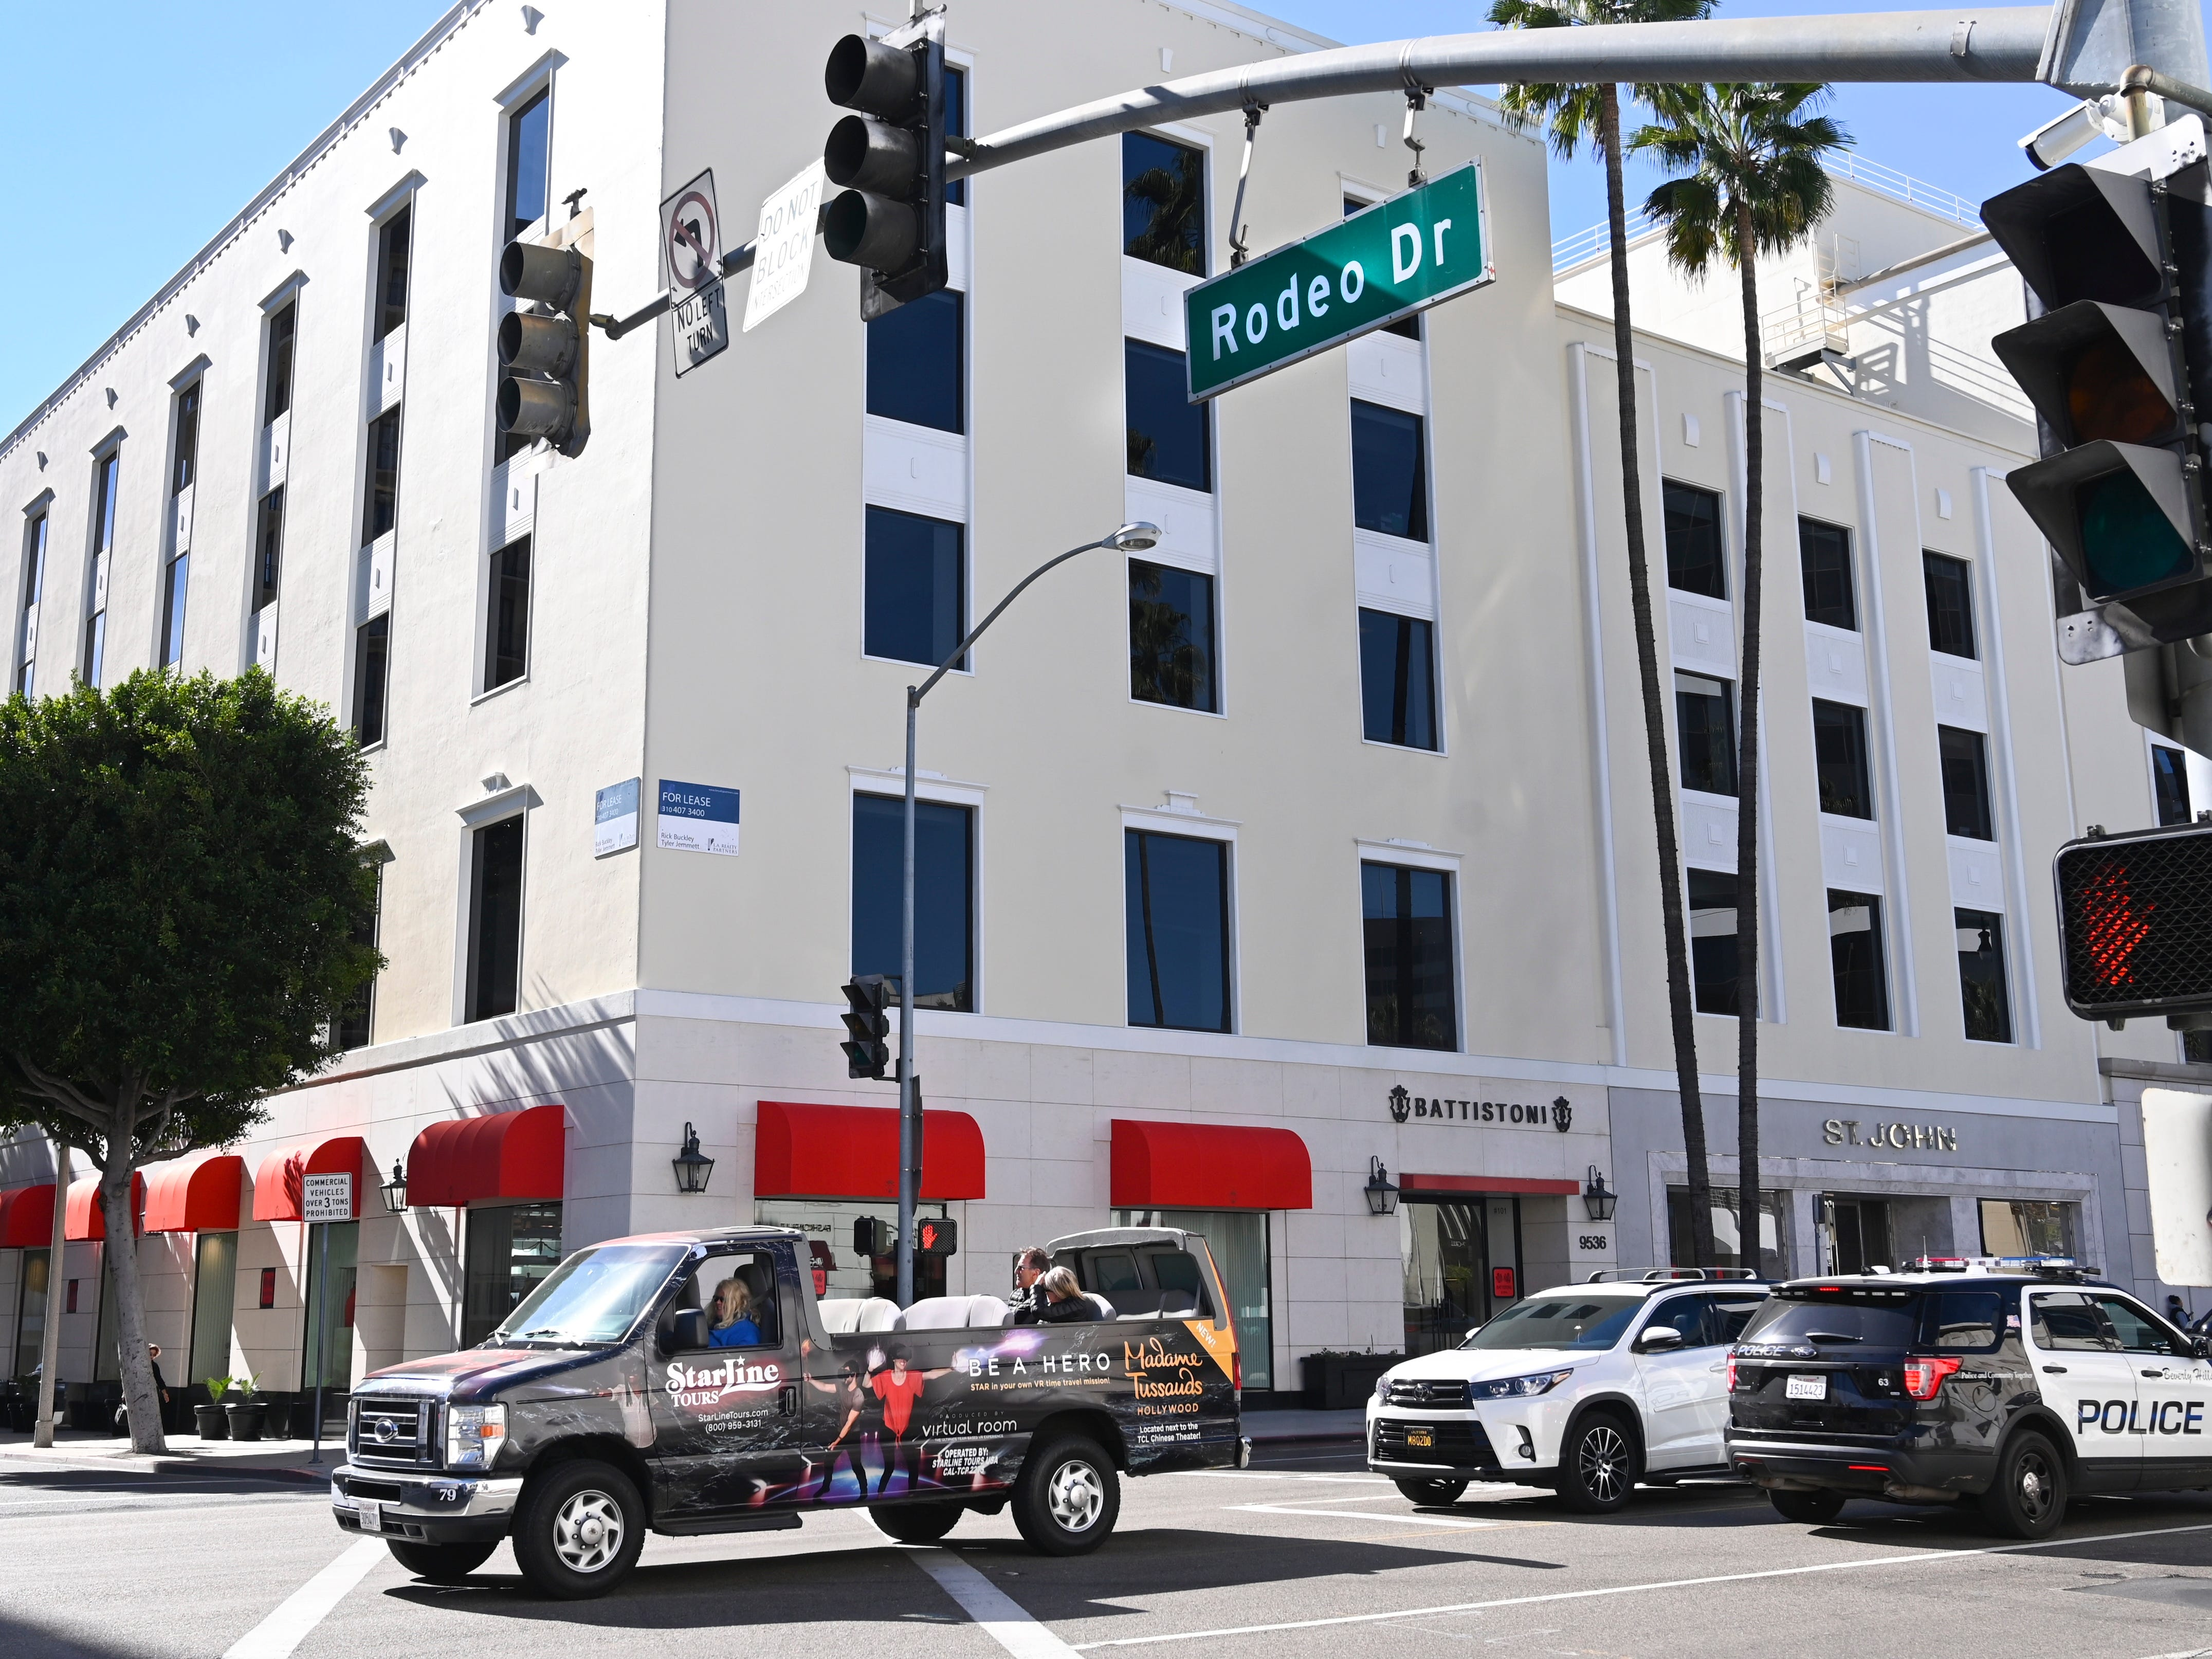 A sightseeing tour bus turns onto Rodeo Drive in BeverlyHills, Jan. 25, 2019.